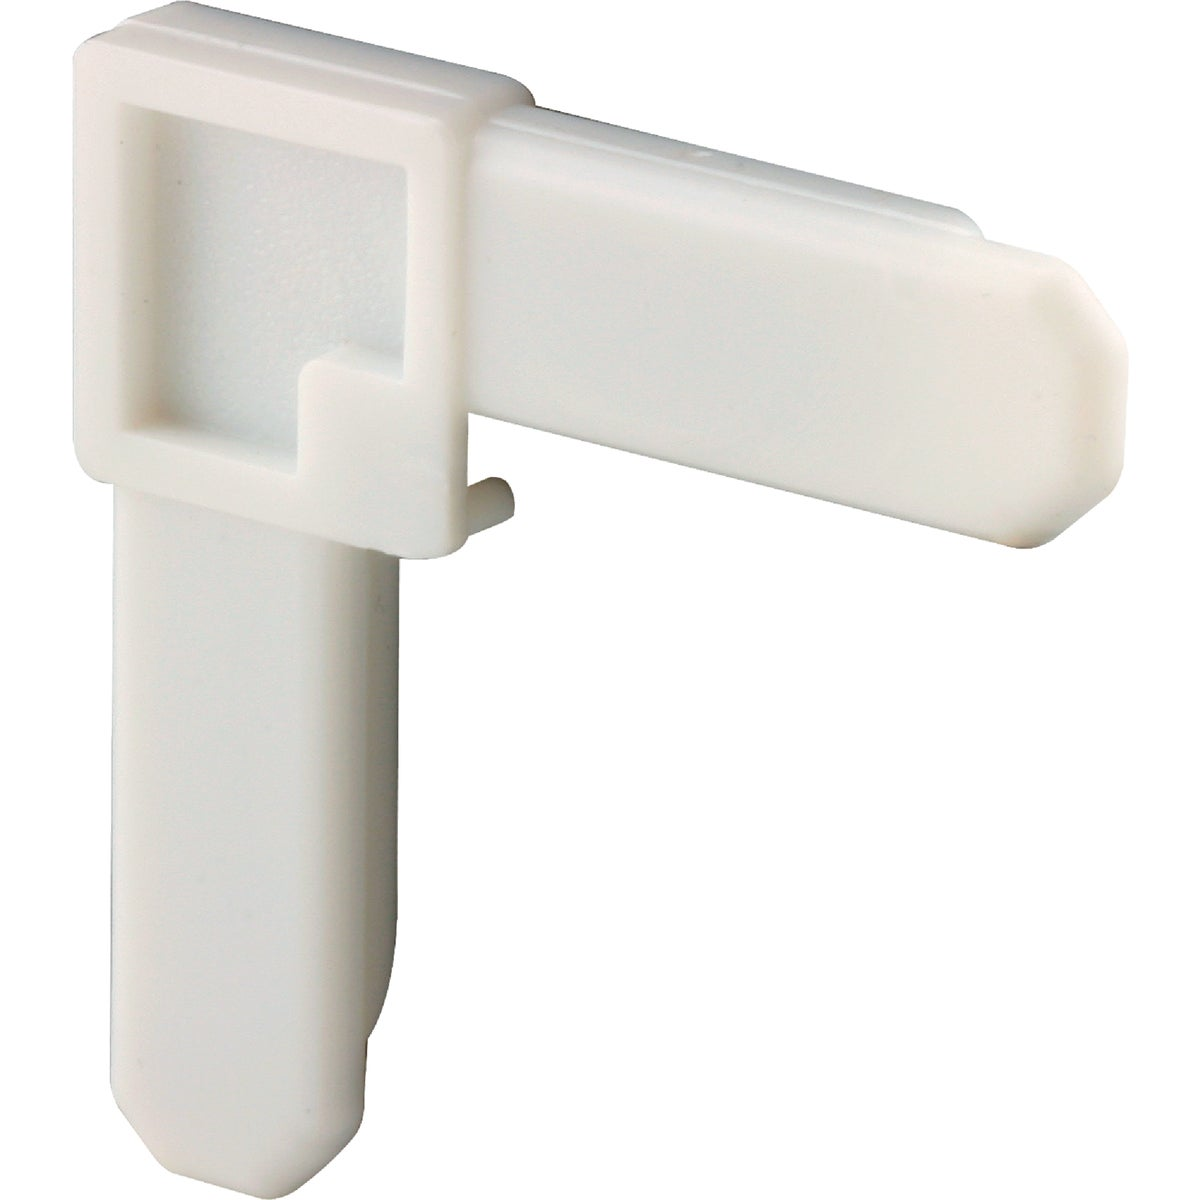 3/4X3/8WHT SCN FM CORNER - PL14274 by Prime Line Products